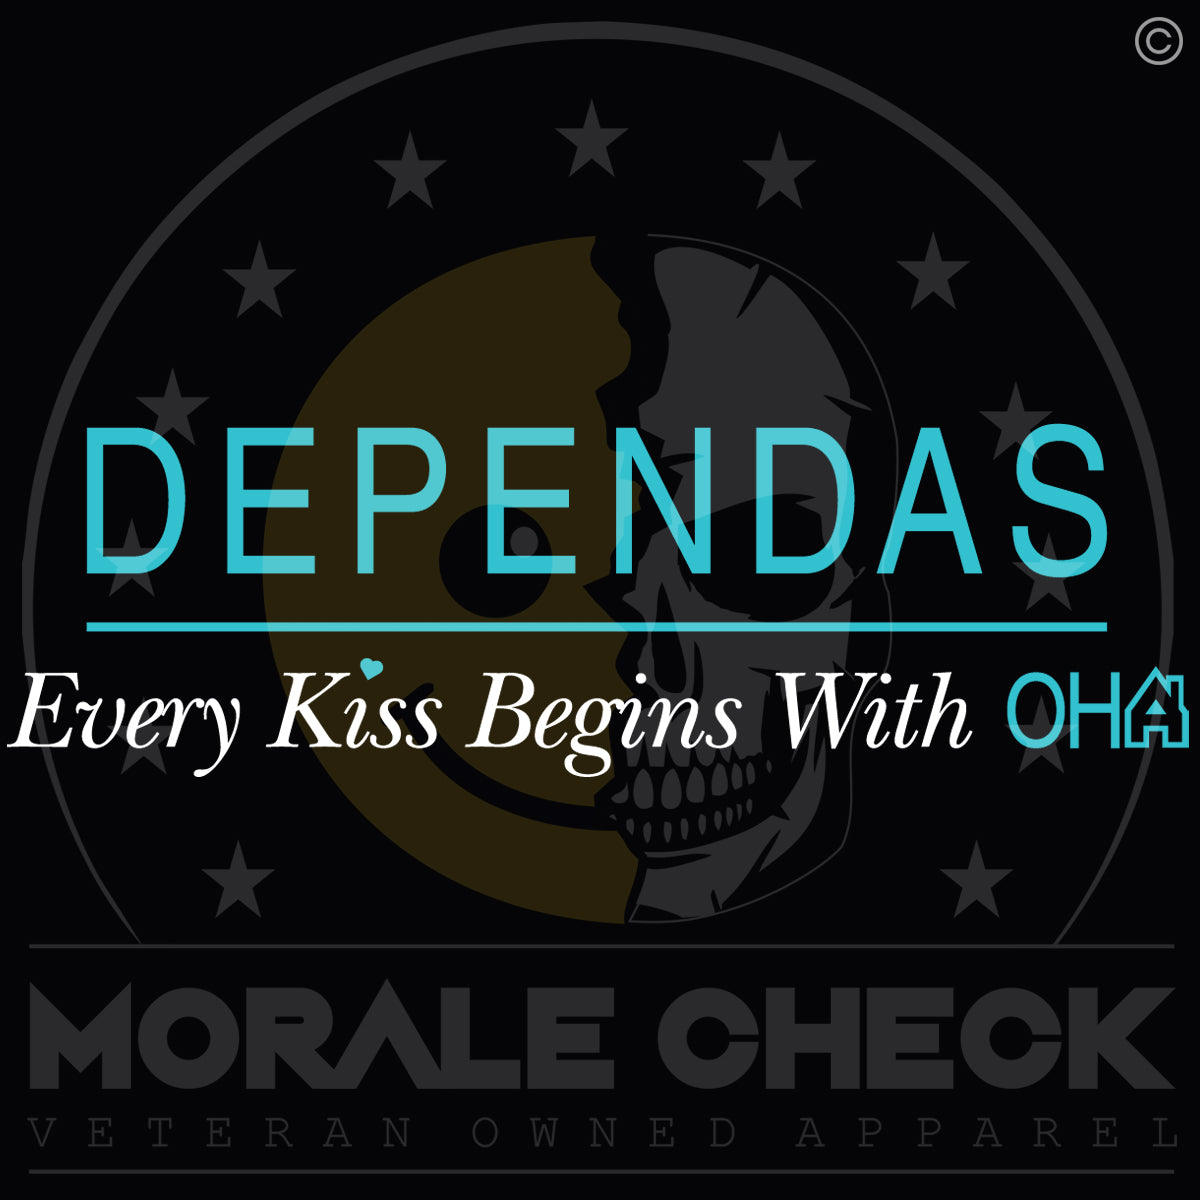 Every Kiss Begins With OHA